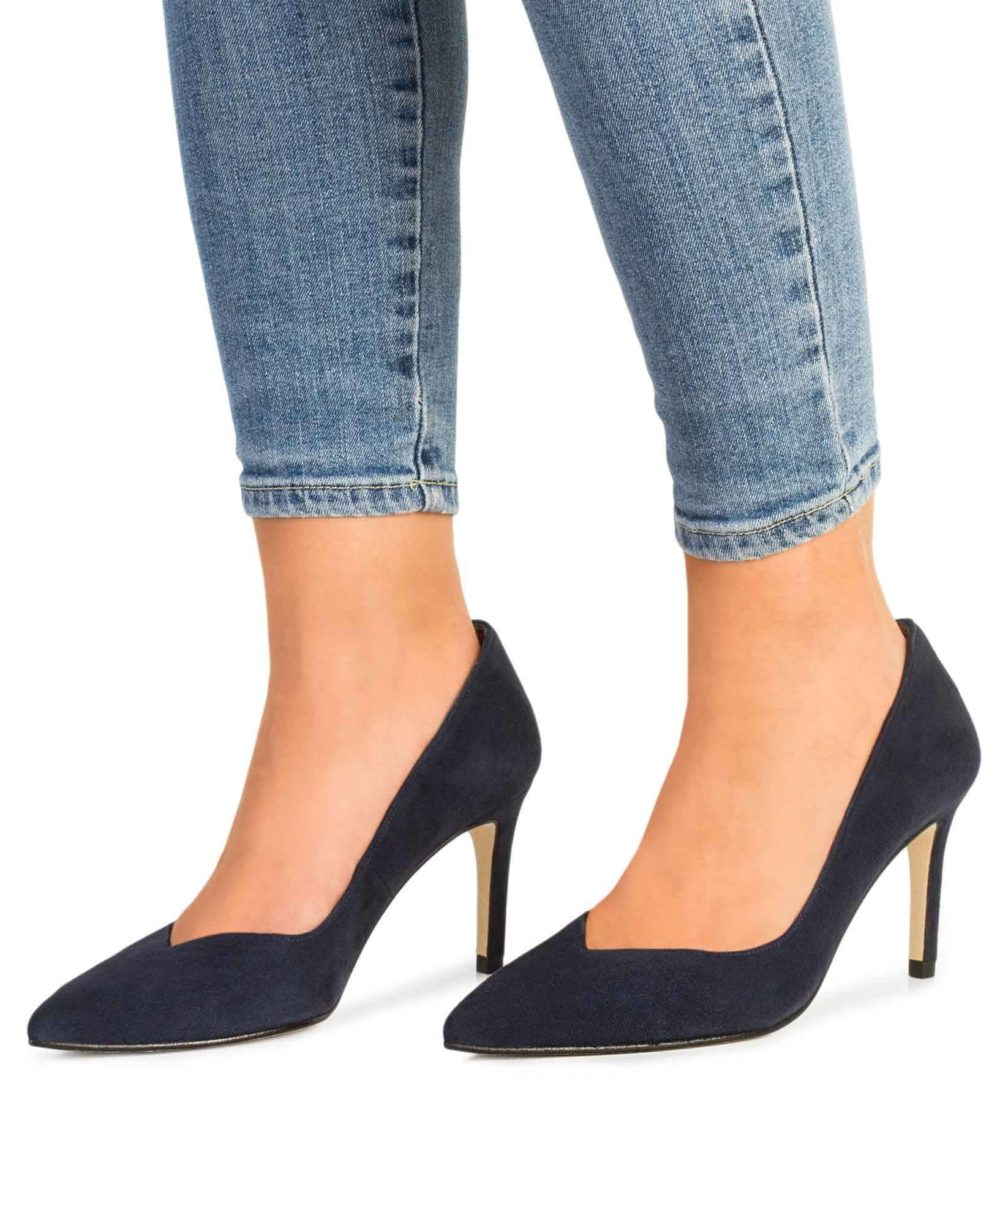 Leather Pumps Paco Gil.